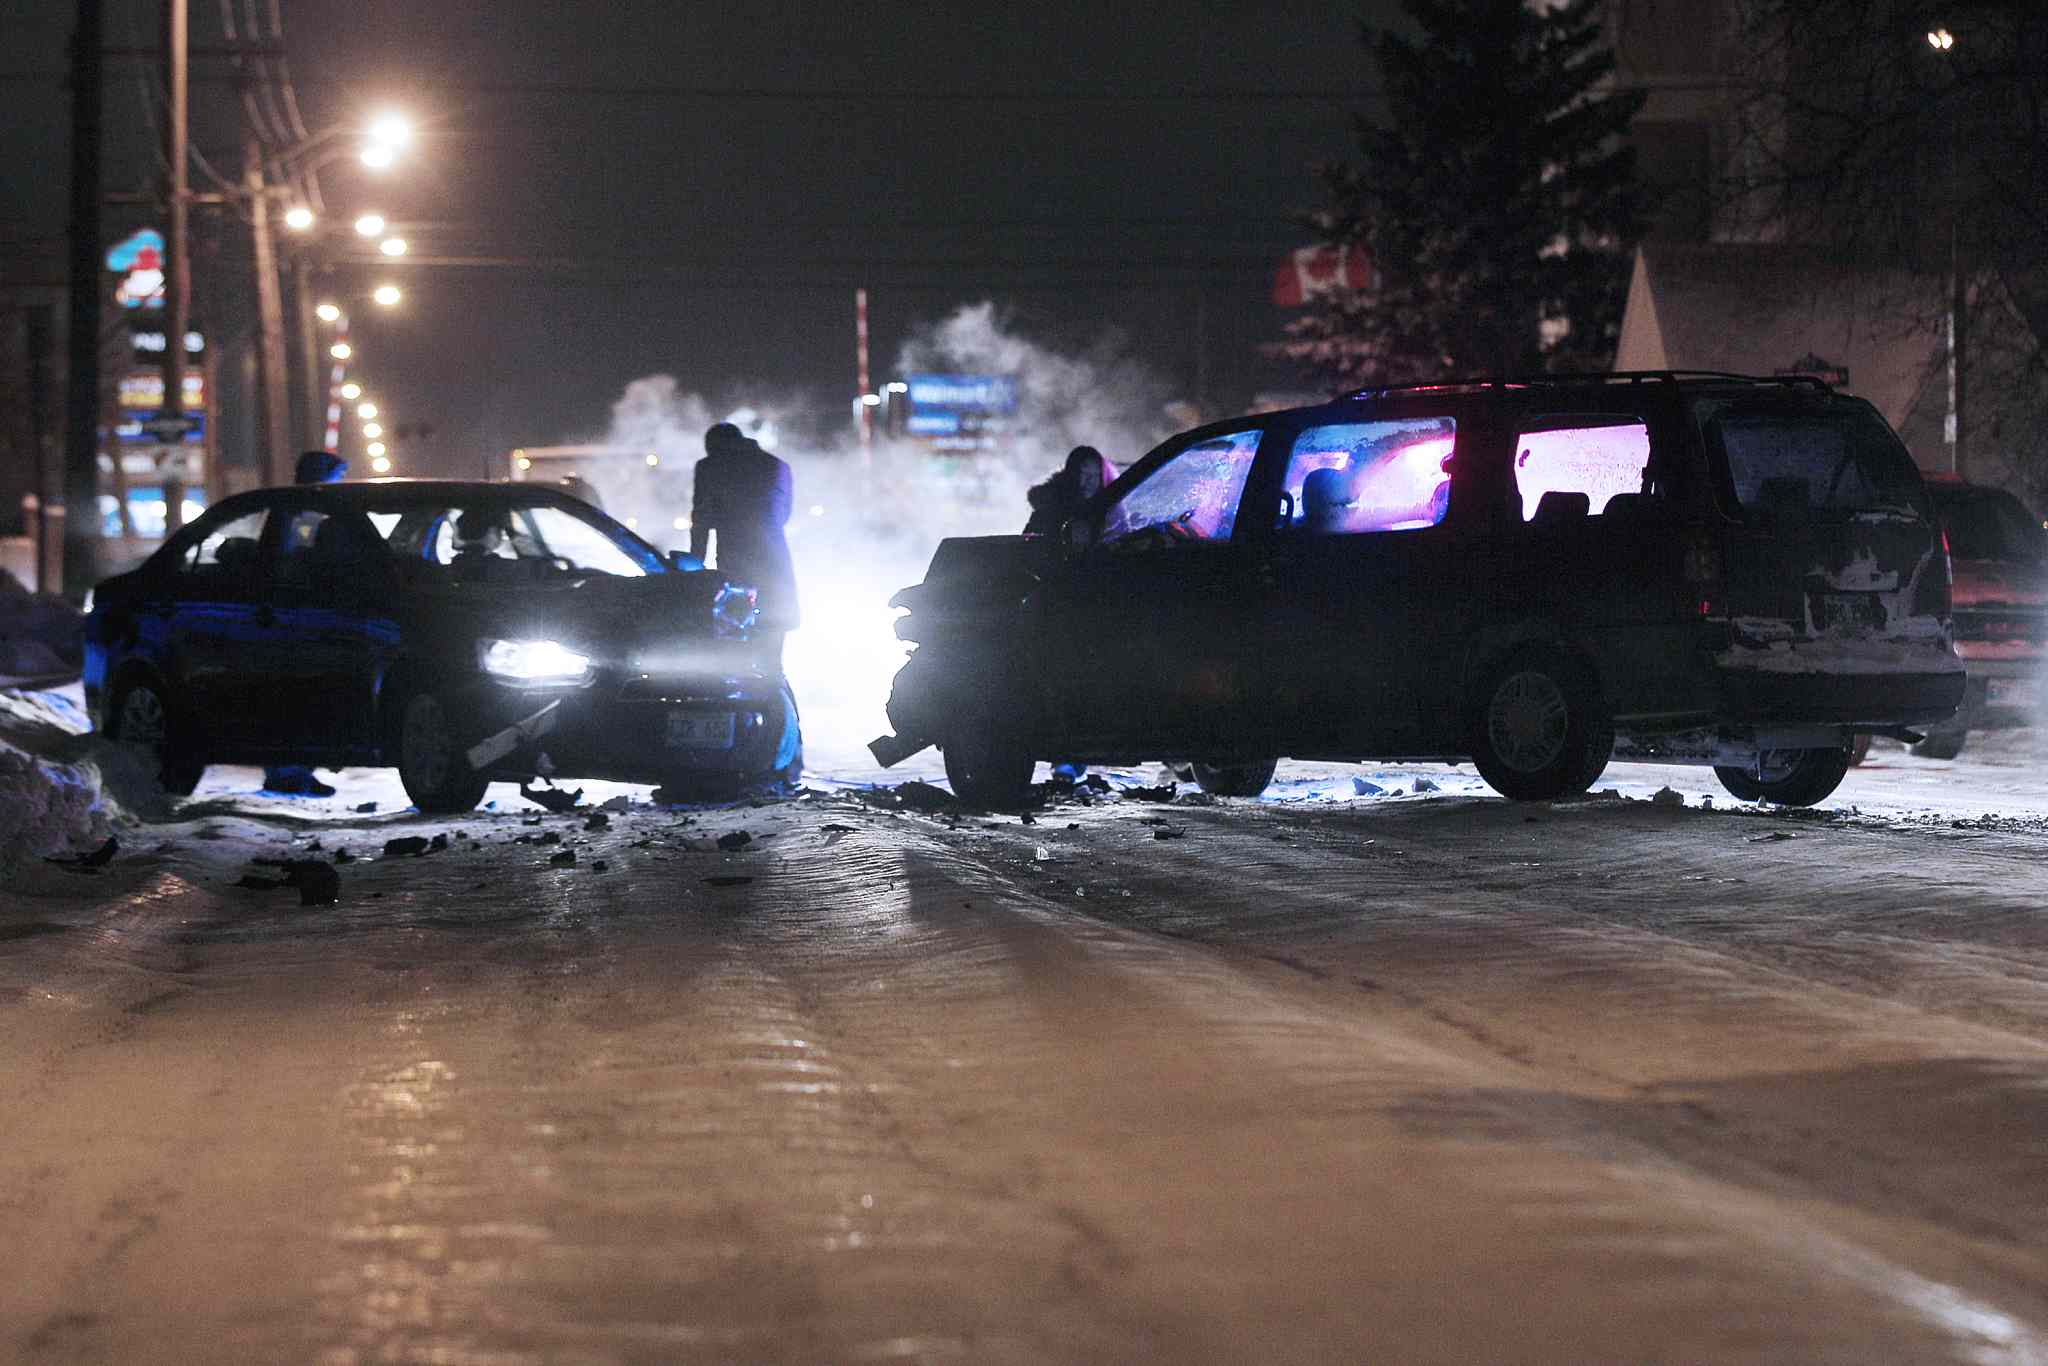 The aftermath of a collision on Ellice Avenue after vehicles slid on the icy, rut-filled road Monday evening. Fender-benders have been commonplace.